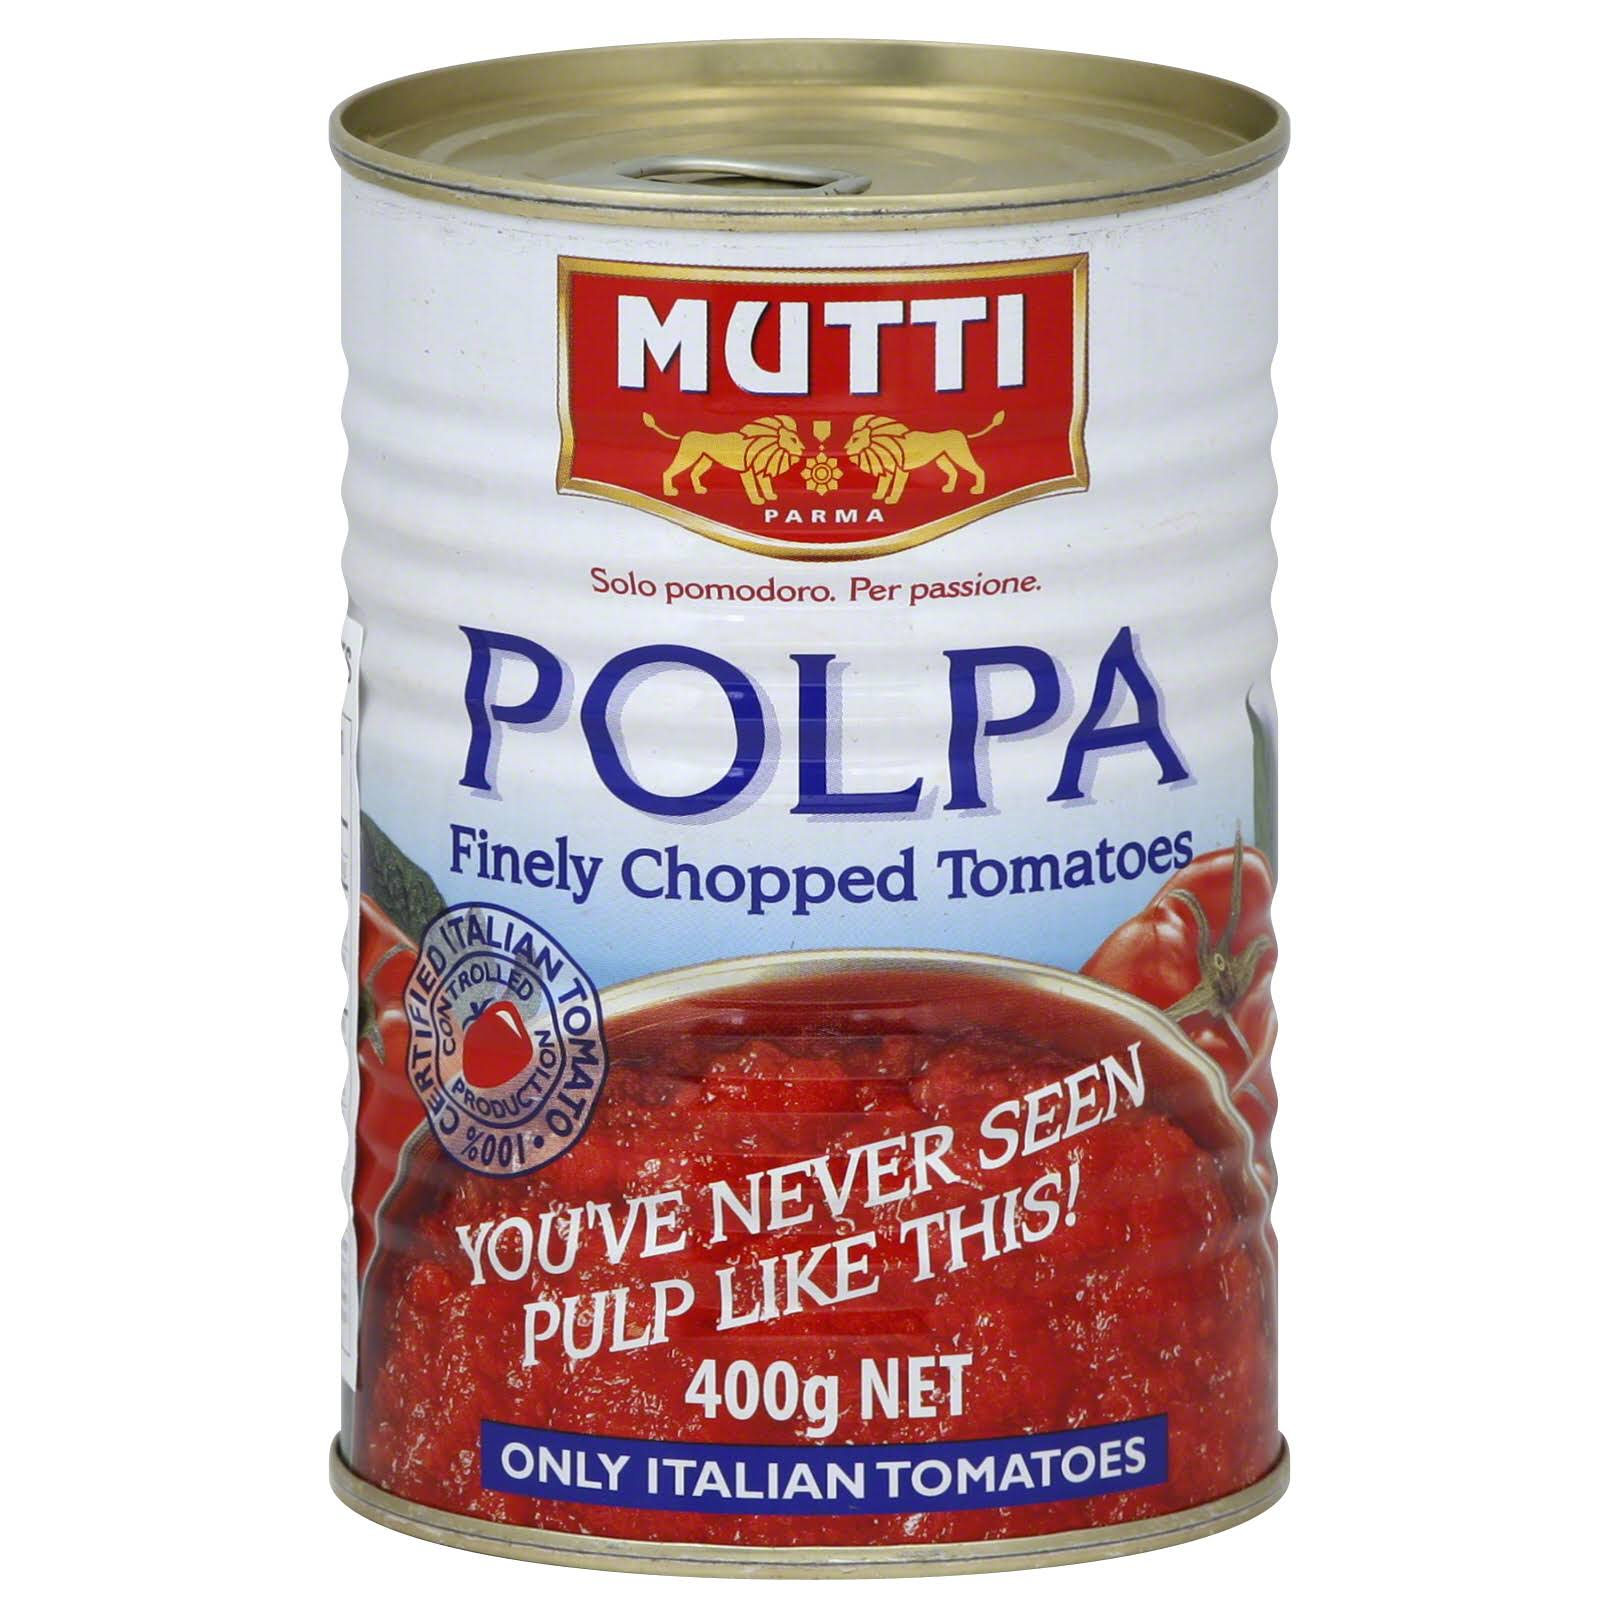 Mutti Finely Chopped Tomatoes - Polpa, 14oz, Pack of 12